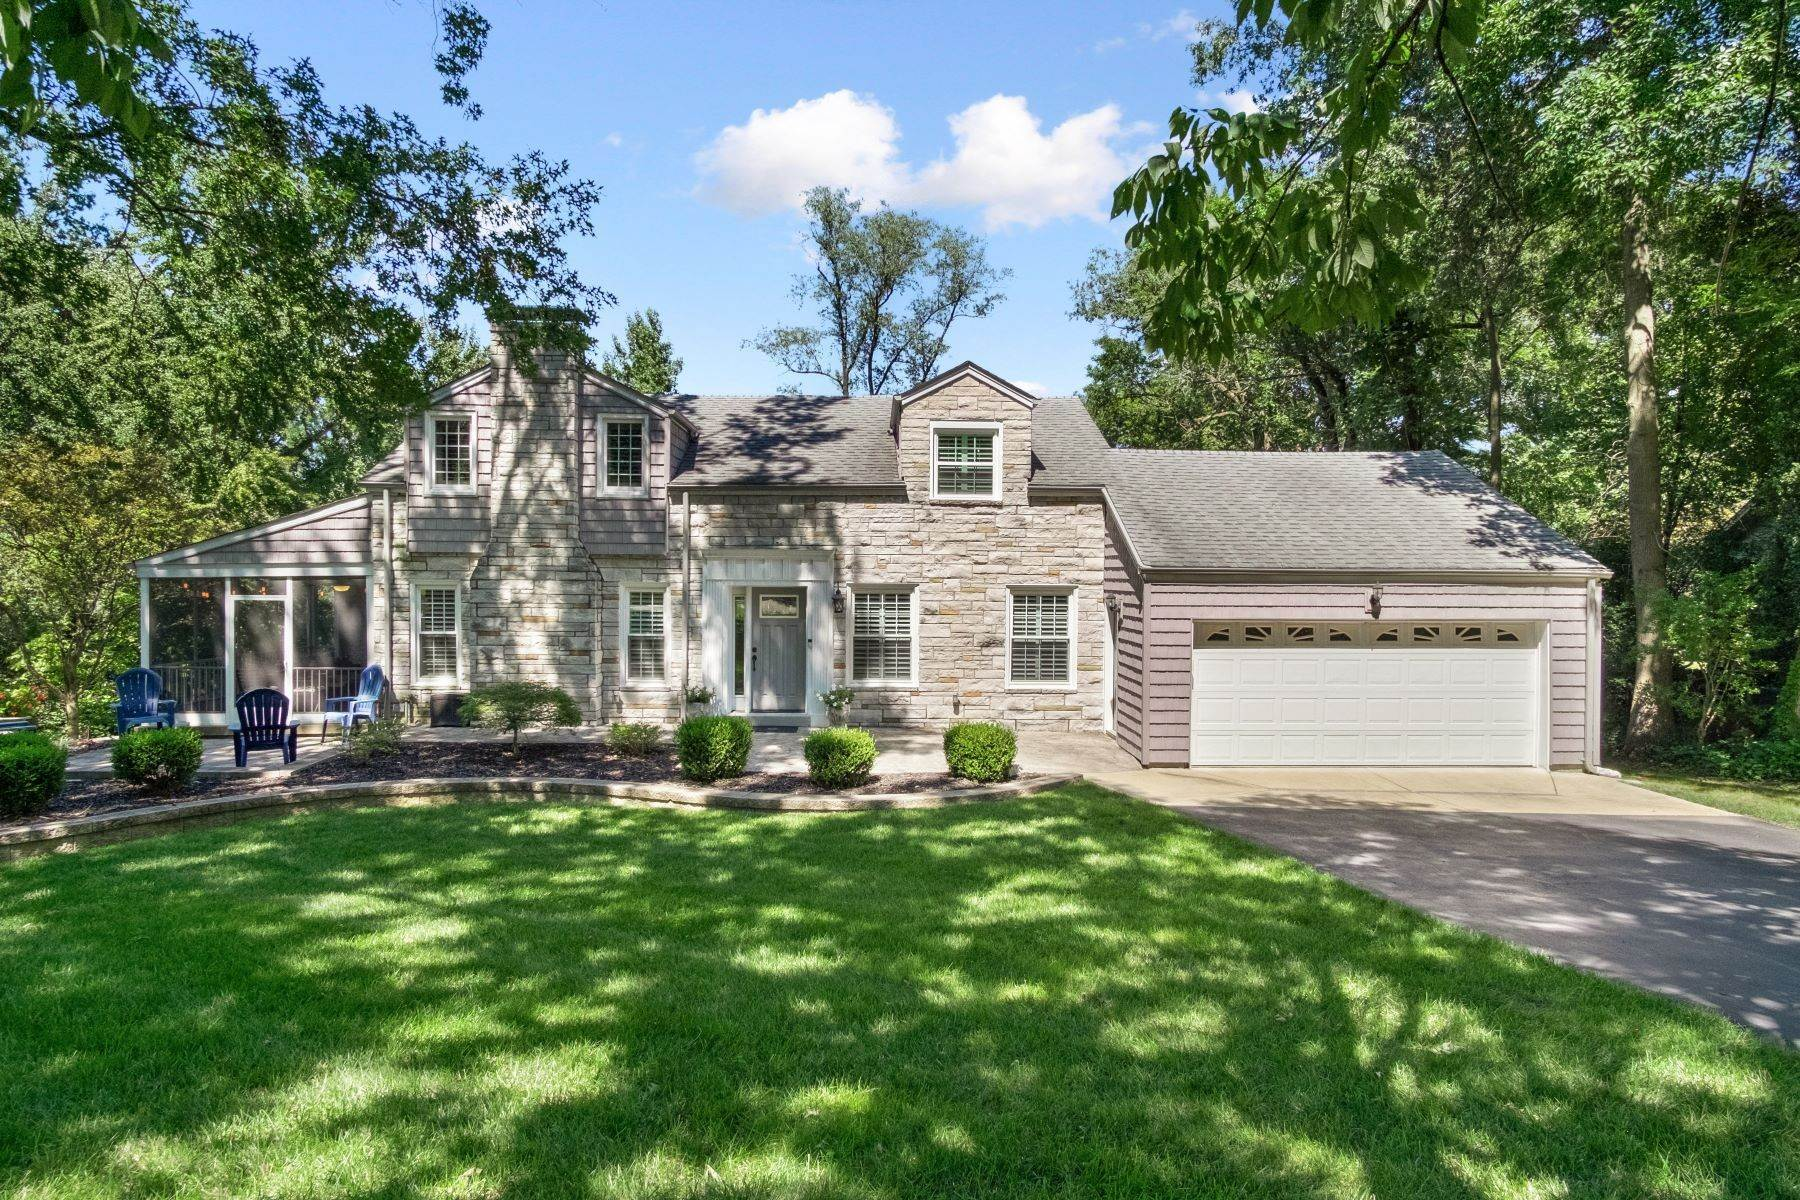 7. Single Family Homes for Sale at Charming Cape Cod Home In Ladue Schools 4 Chaminade Drive Creve Coeur, Missouri 63141 United States